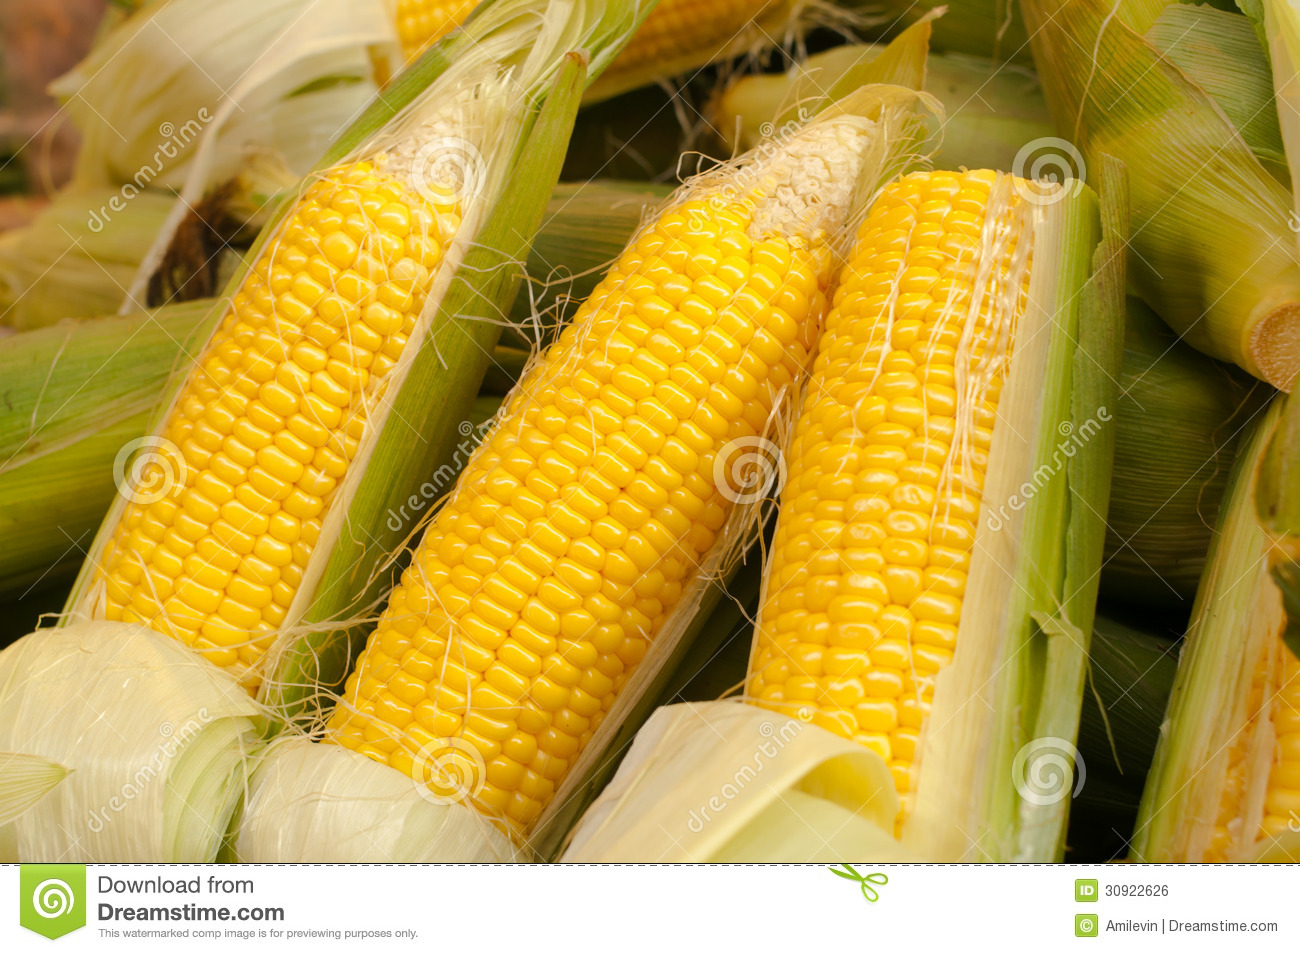 corn cobs A corncob, also called cob of corn,  be added to soup stock or made into traditional sweetened corncob jelly bedding for animals – cobs absorb moisture and.